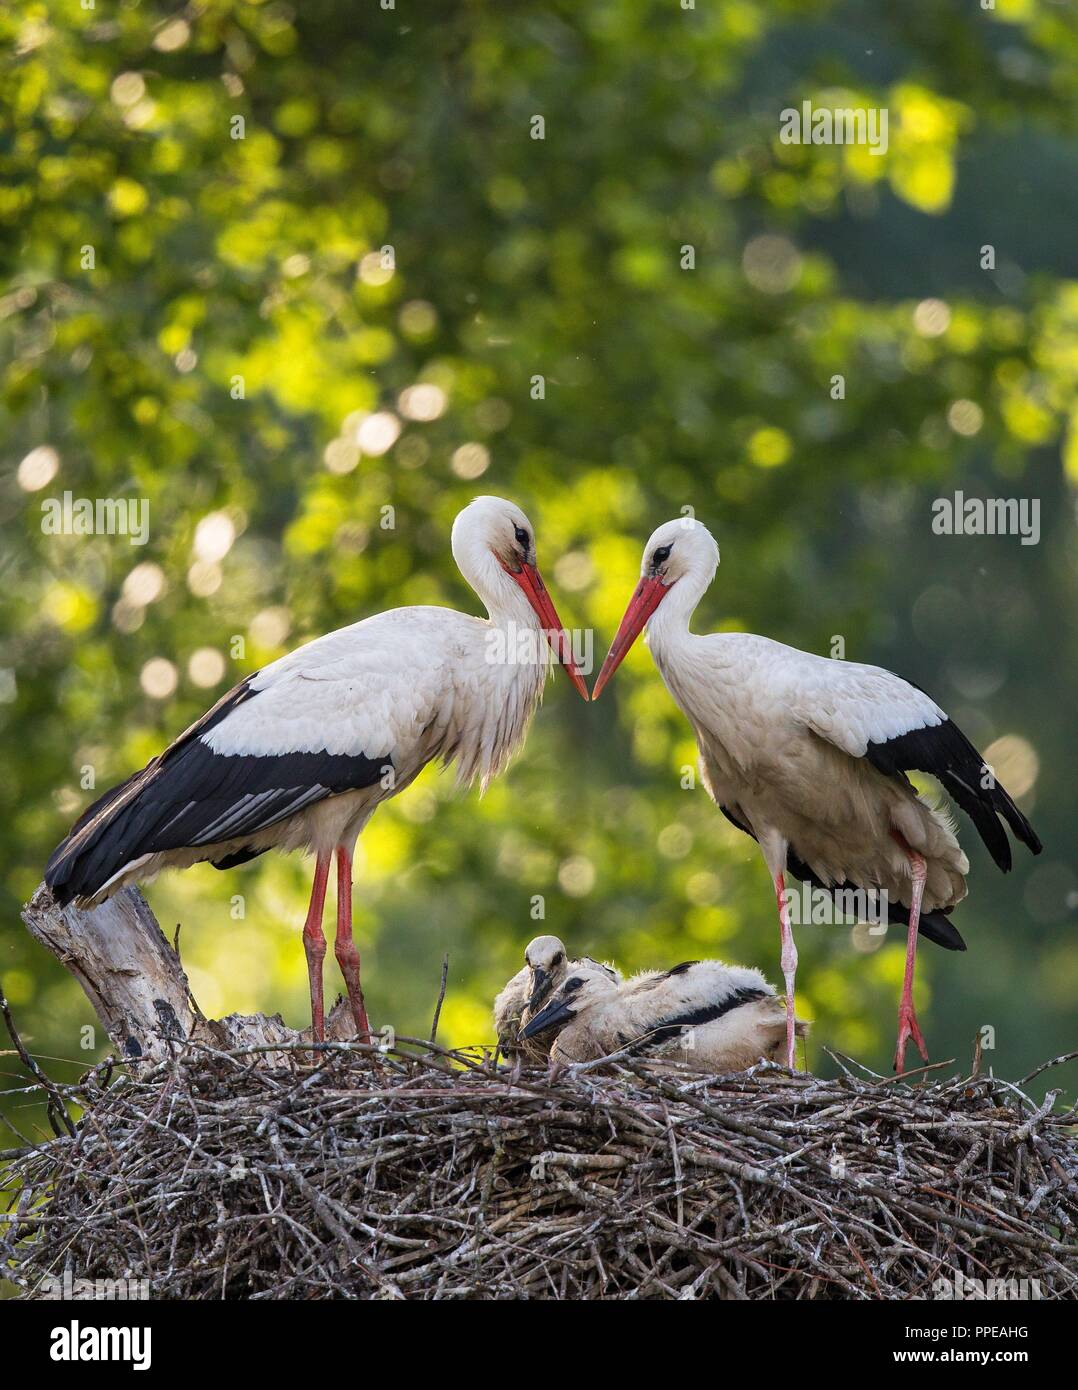 White Stork (Ciconia ciconia) breeding pair standing on nest with two chicks, Baden-Wuerttemberg, Germany | usage worldwide Stock Photo